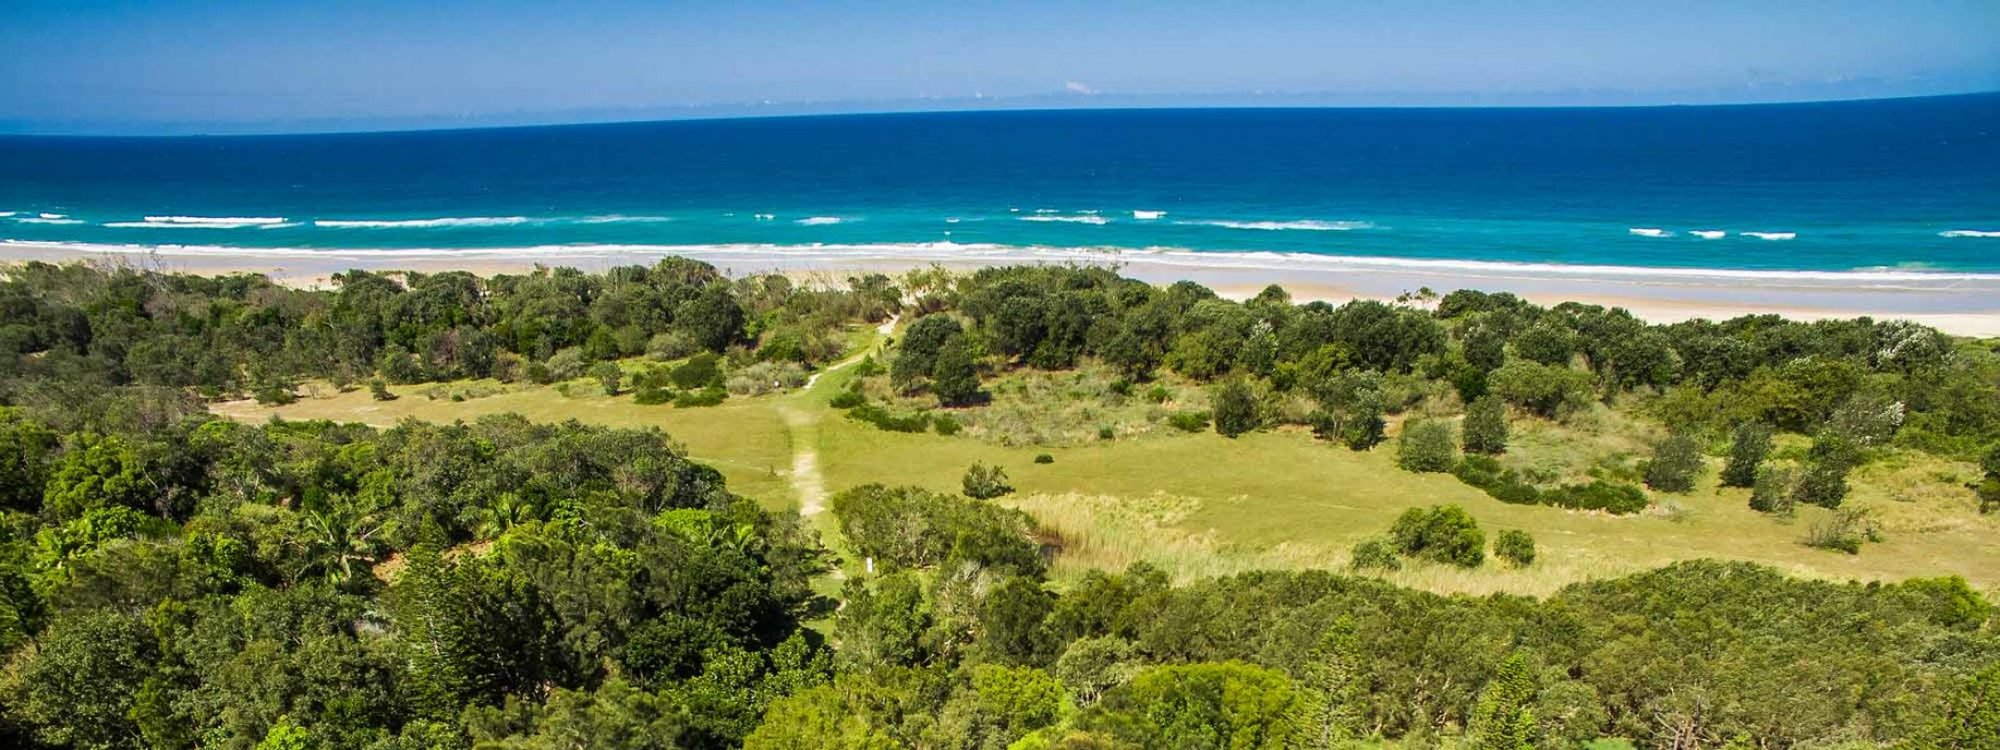 Baby Blue - Byron Bay - Aerial View d